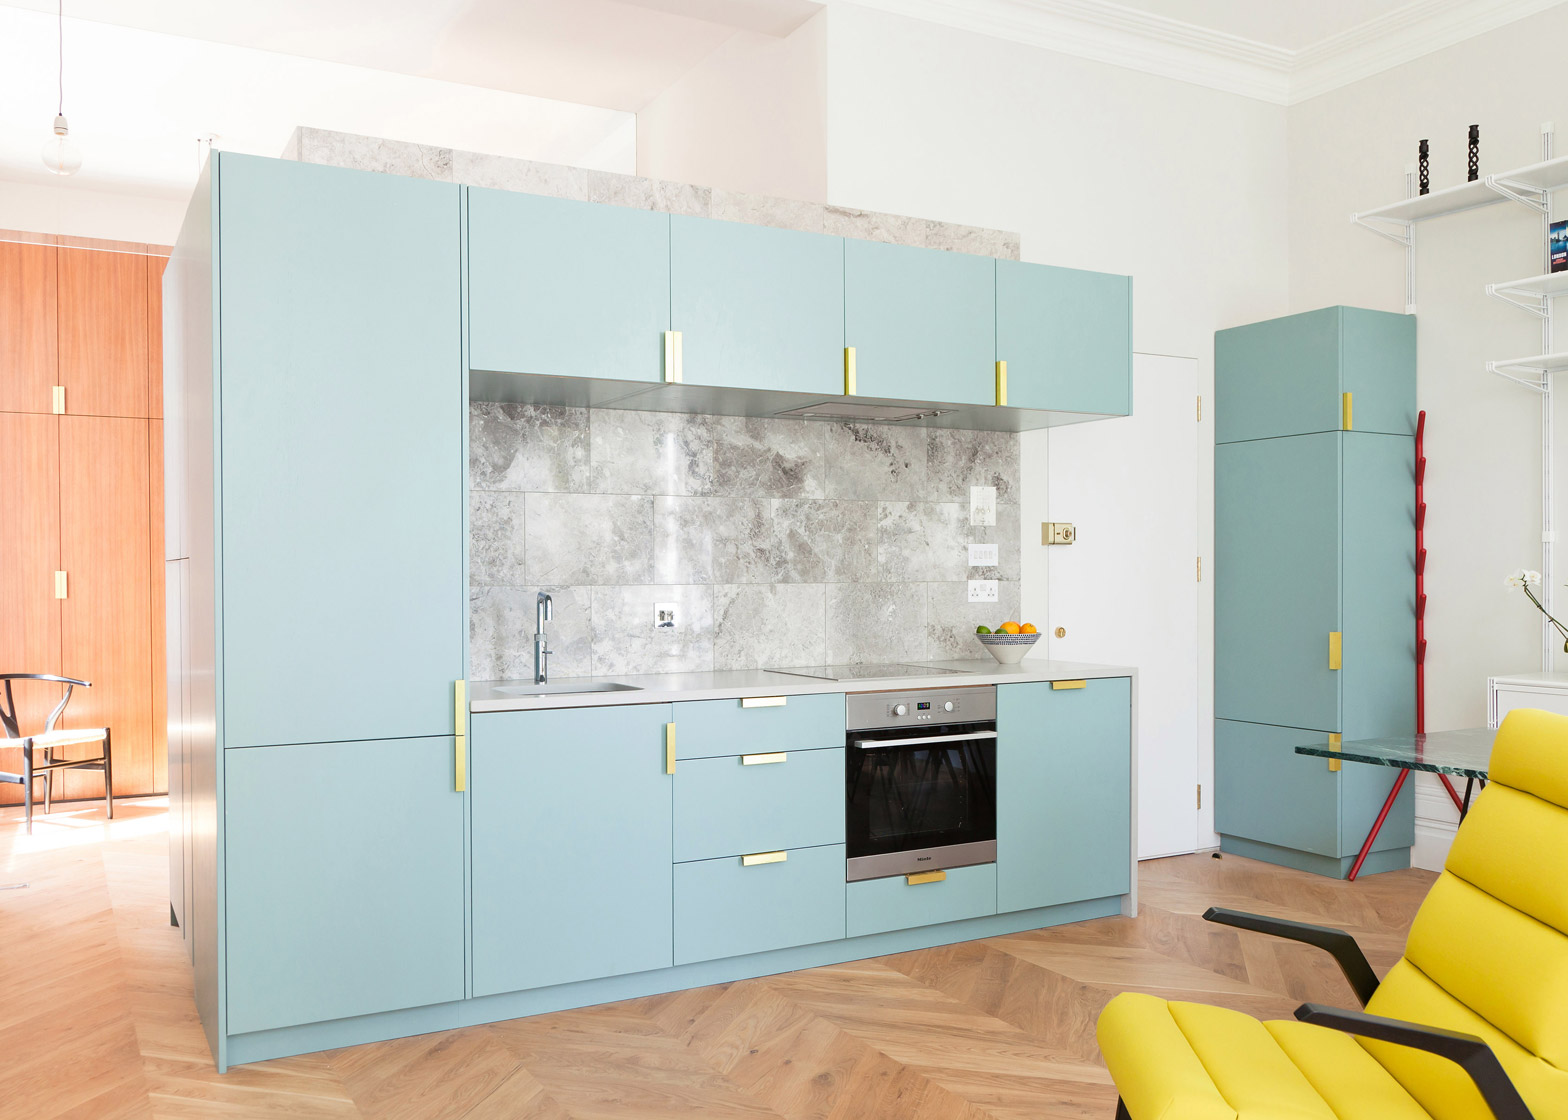 Customise Your Kitchen Cabinets With Bespoke Fronts By Naked Doors